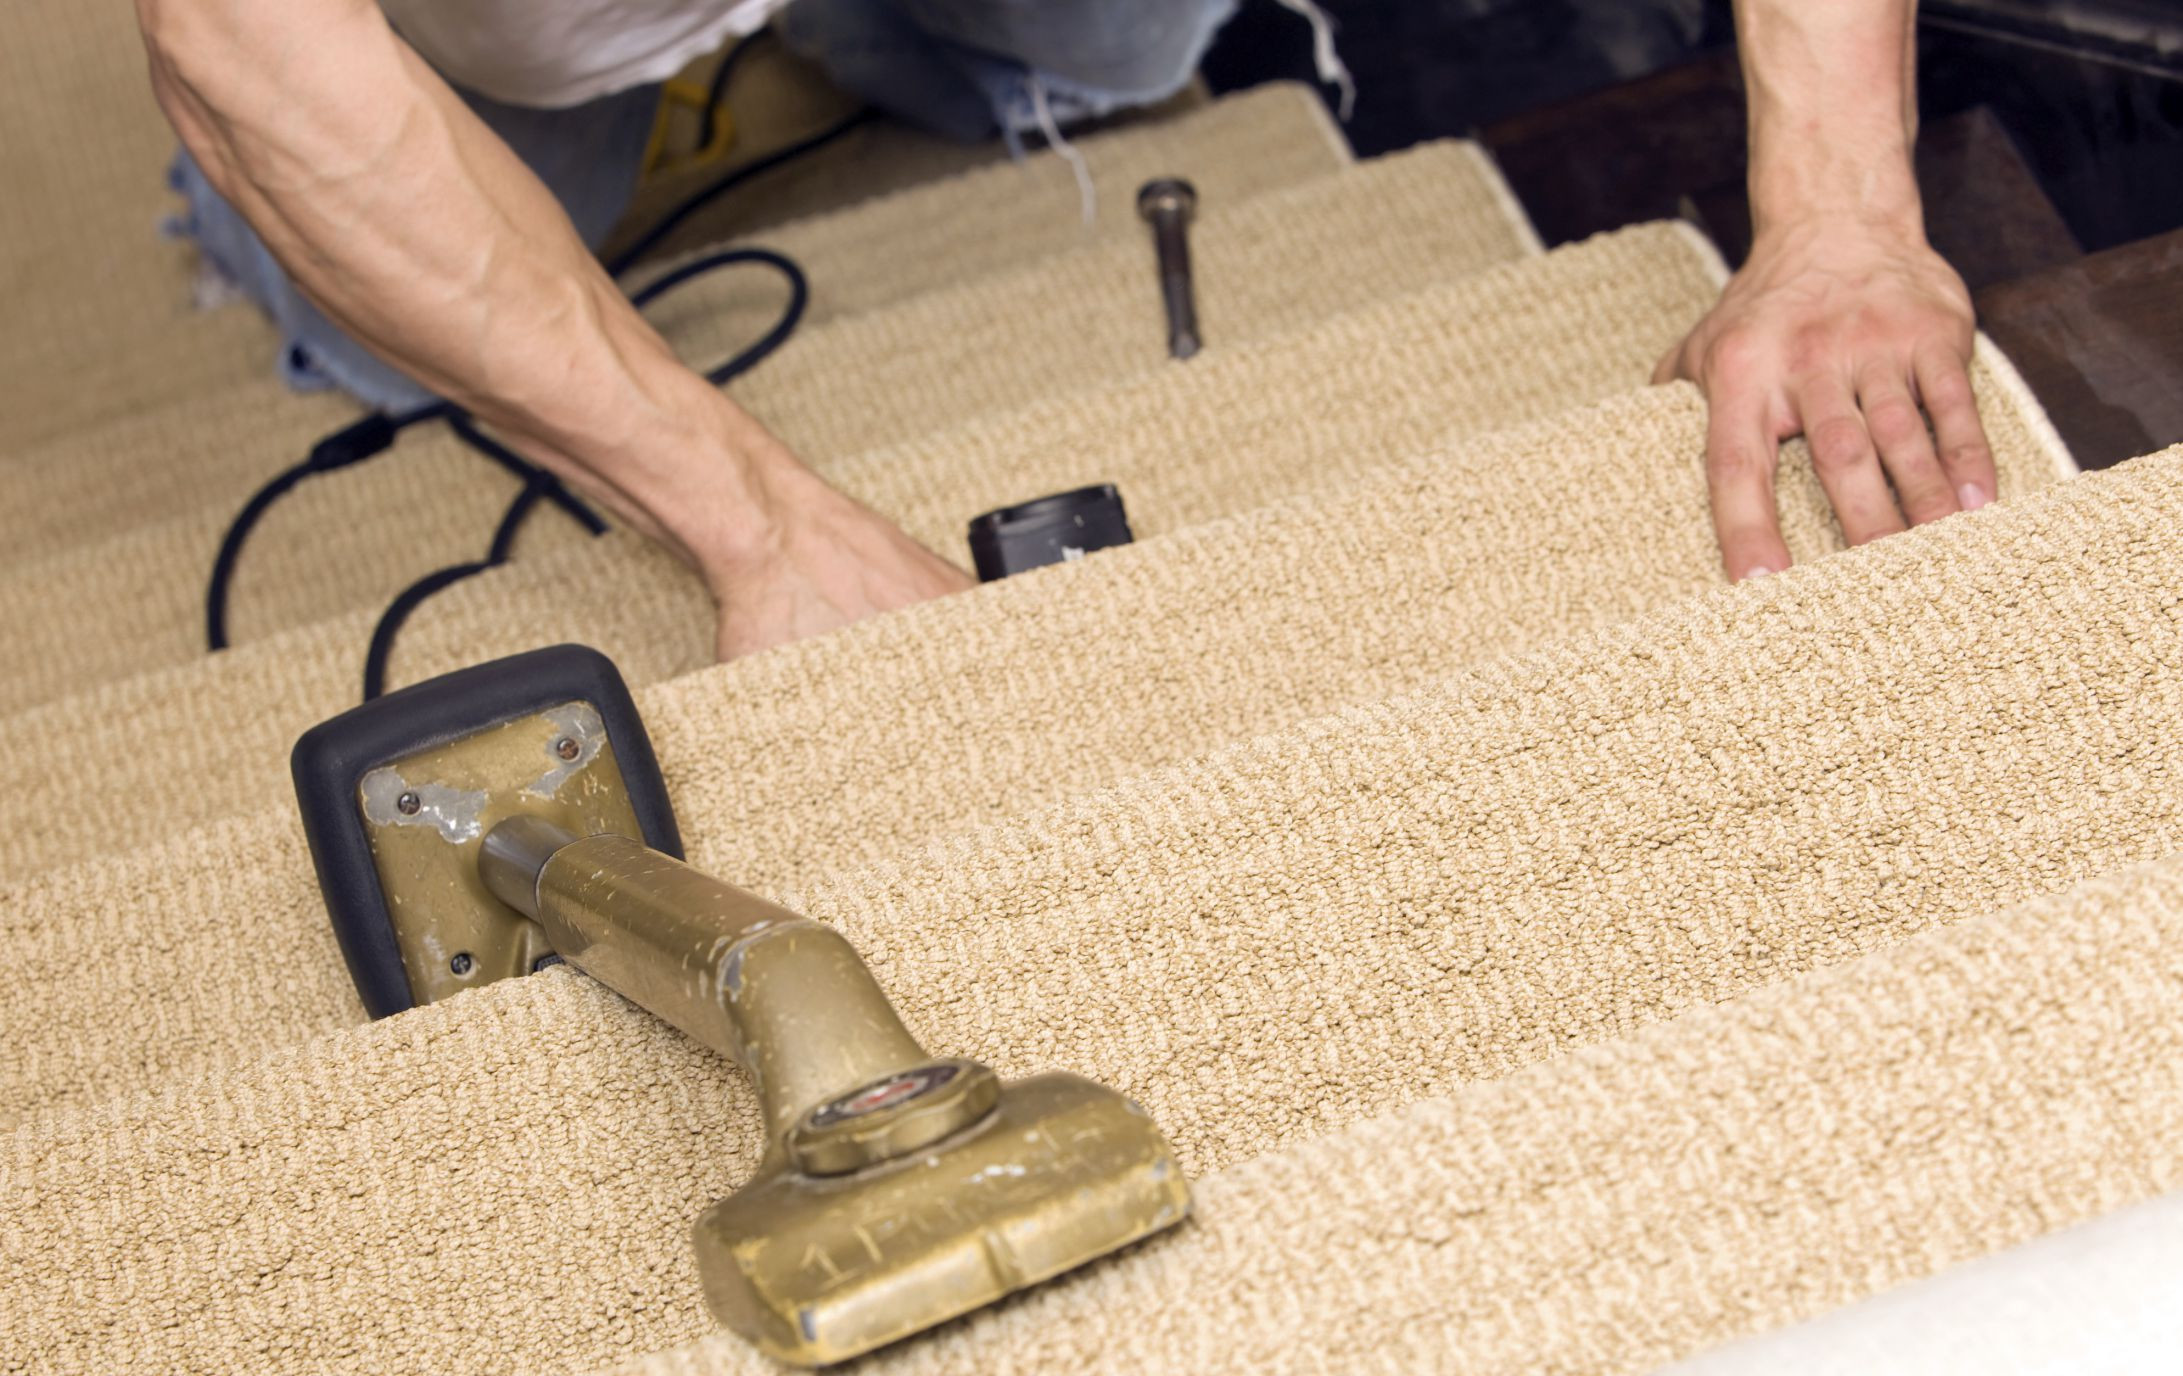 hardwood floor nosing of should you put carpet on stairs or not intended for installing carpet on stairs 184091612 56a4a12e3df78cf7728352e5